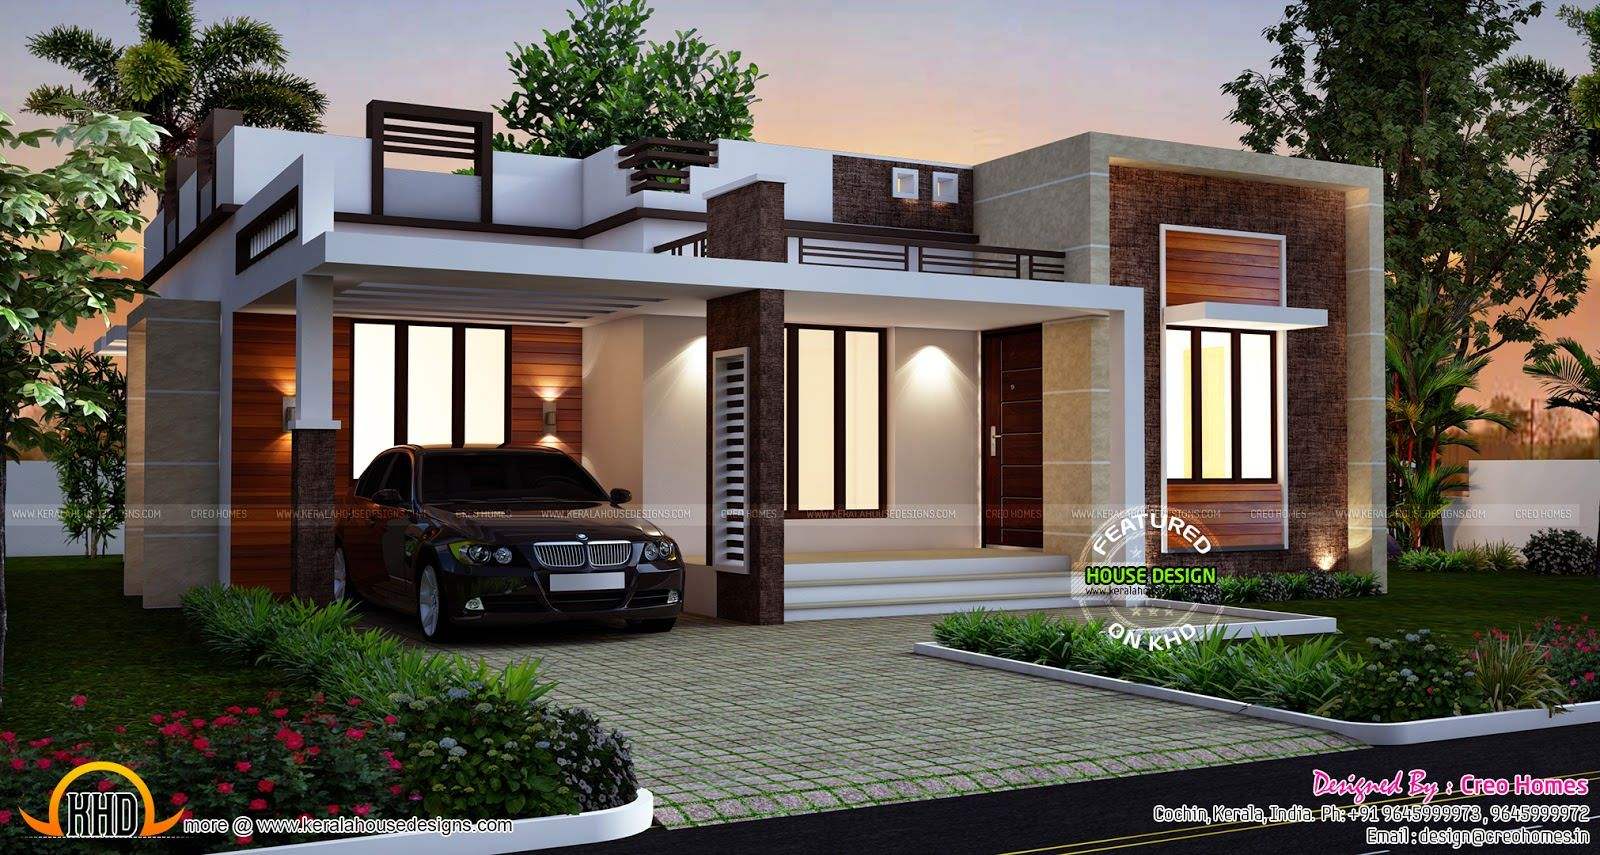 Designs homes design single story flat roof house plans for New home plans that look old